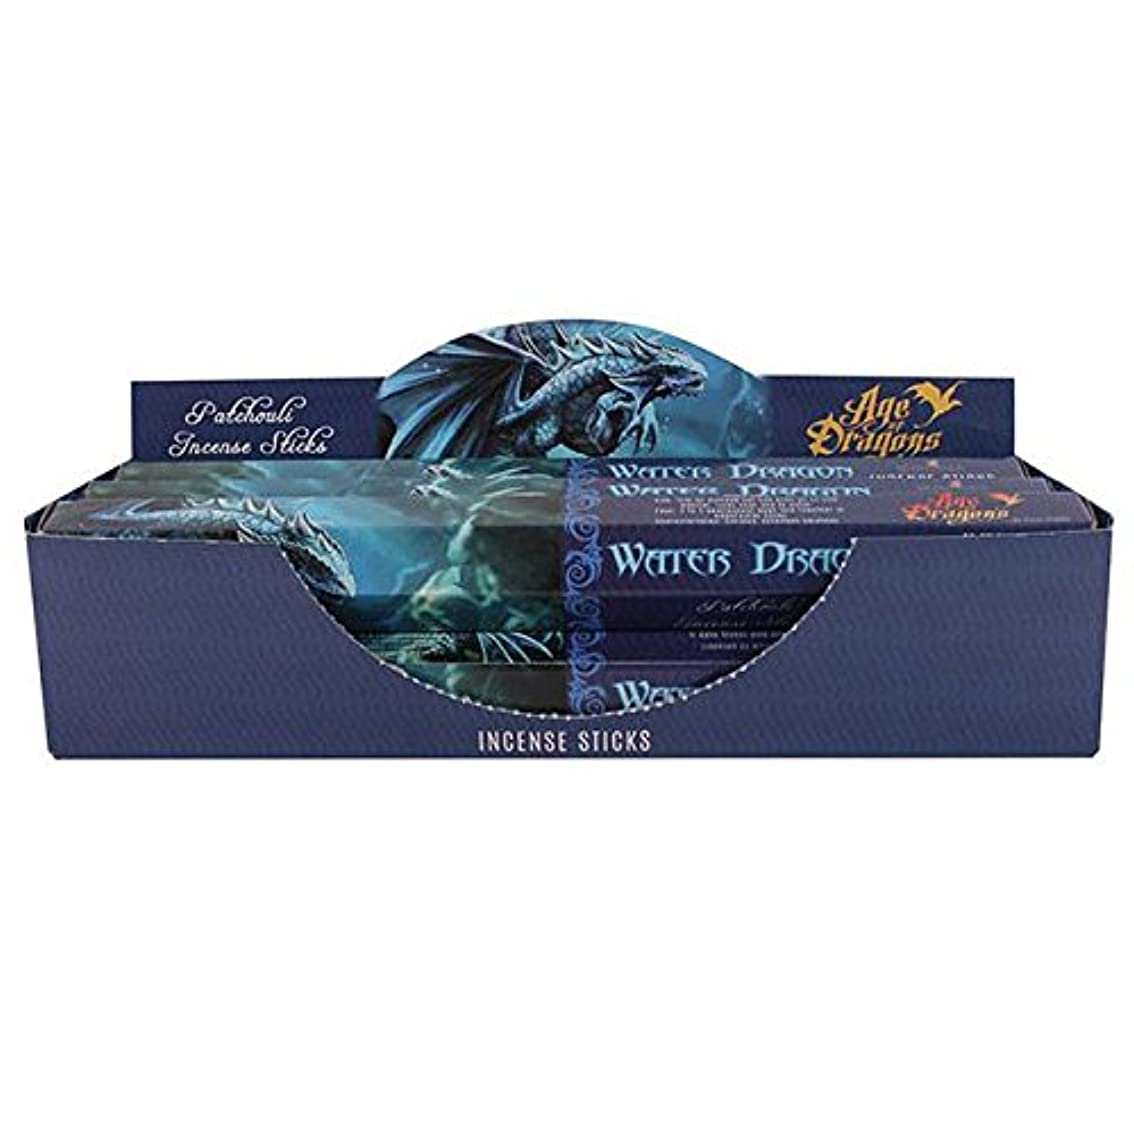 Pack of 6 Water Dragon Incense Sticks by Anne Stokes